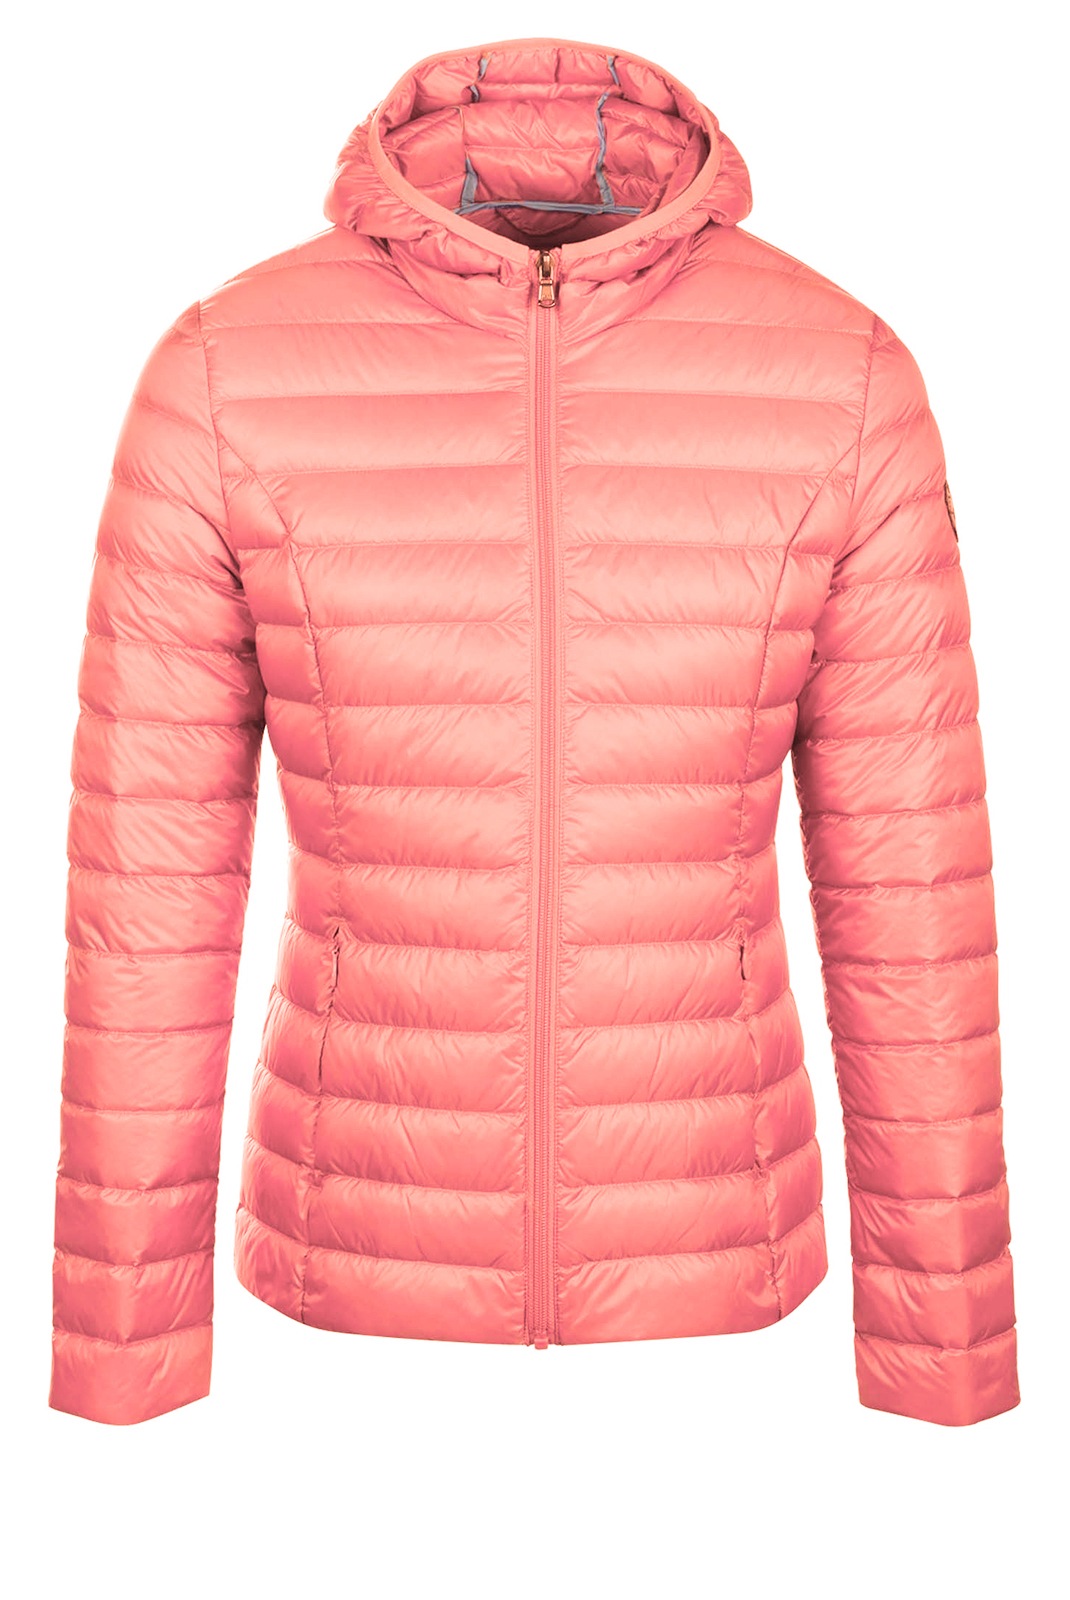 Blouson  Just over the top CLOE 431 ROSE